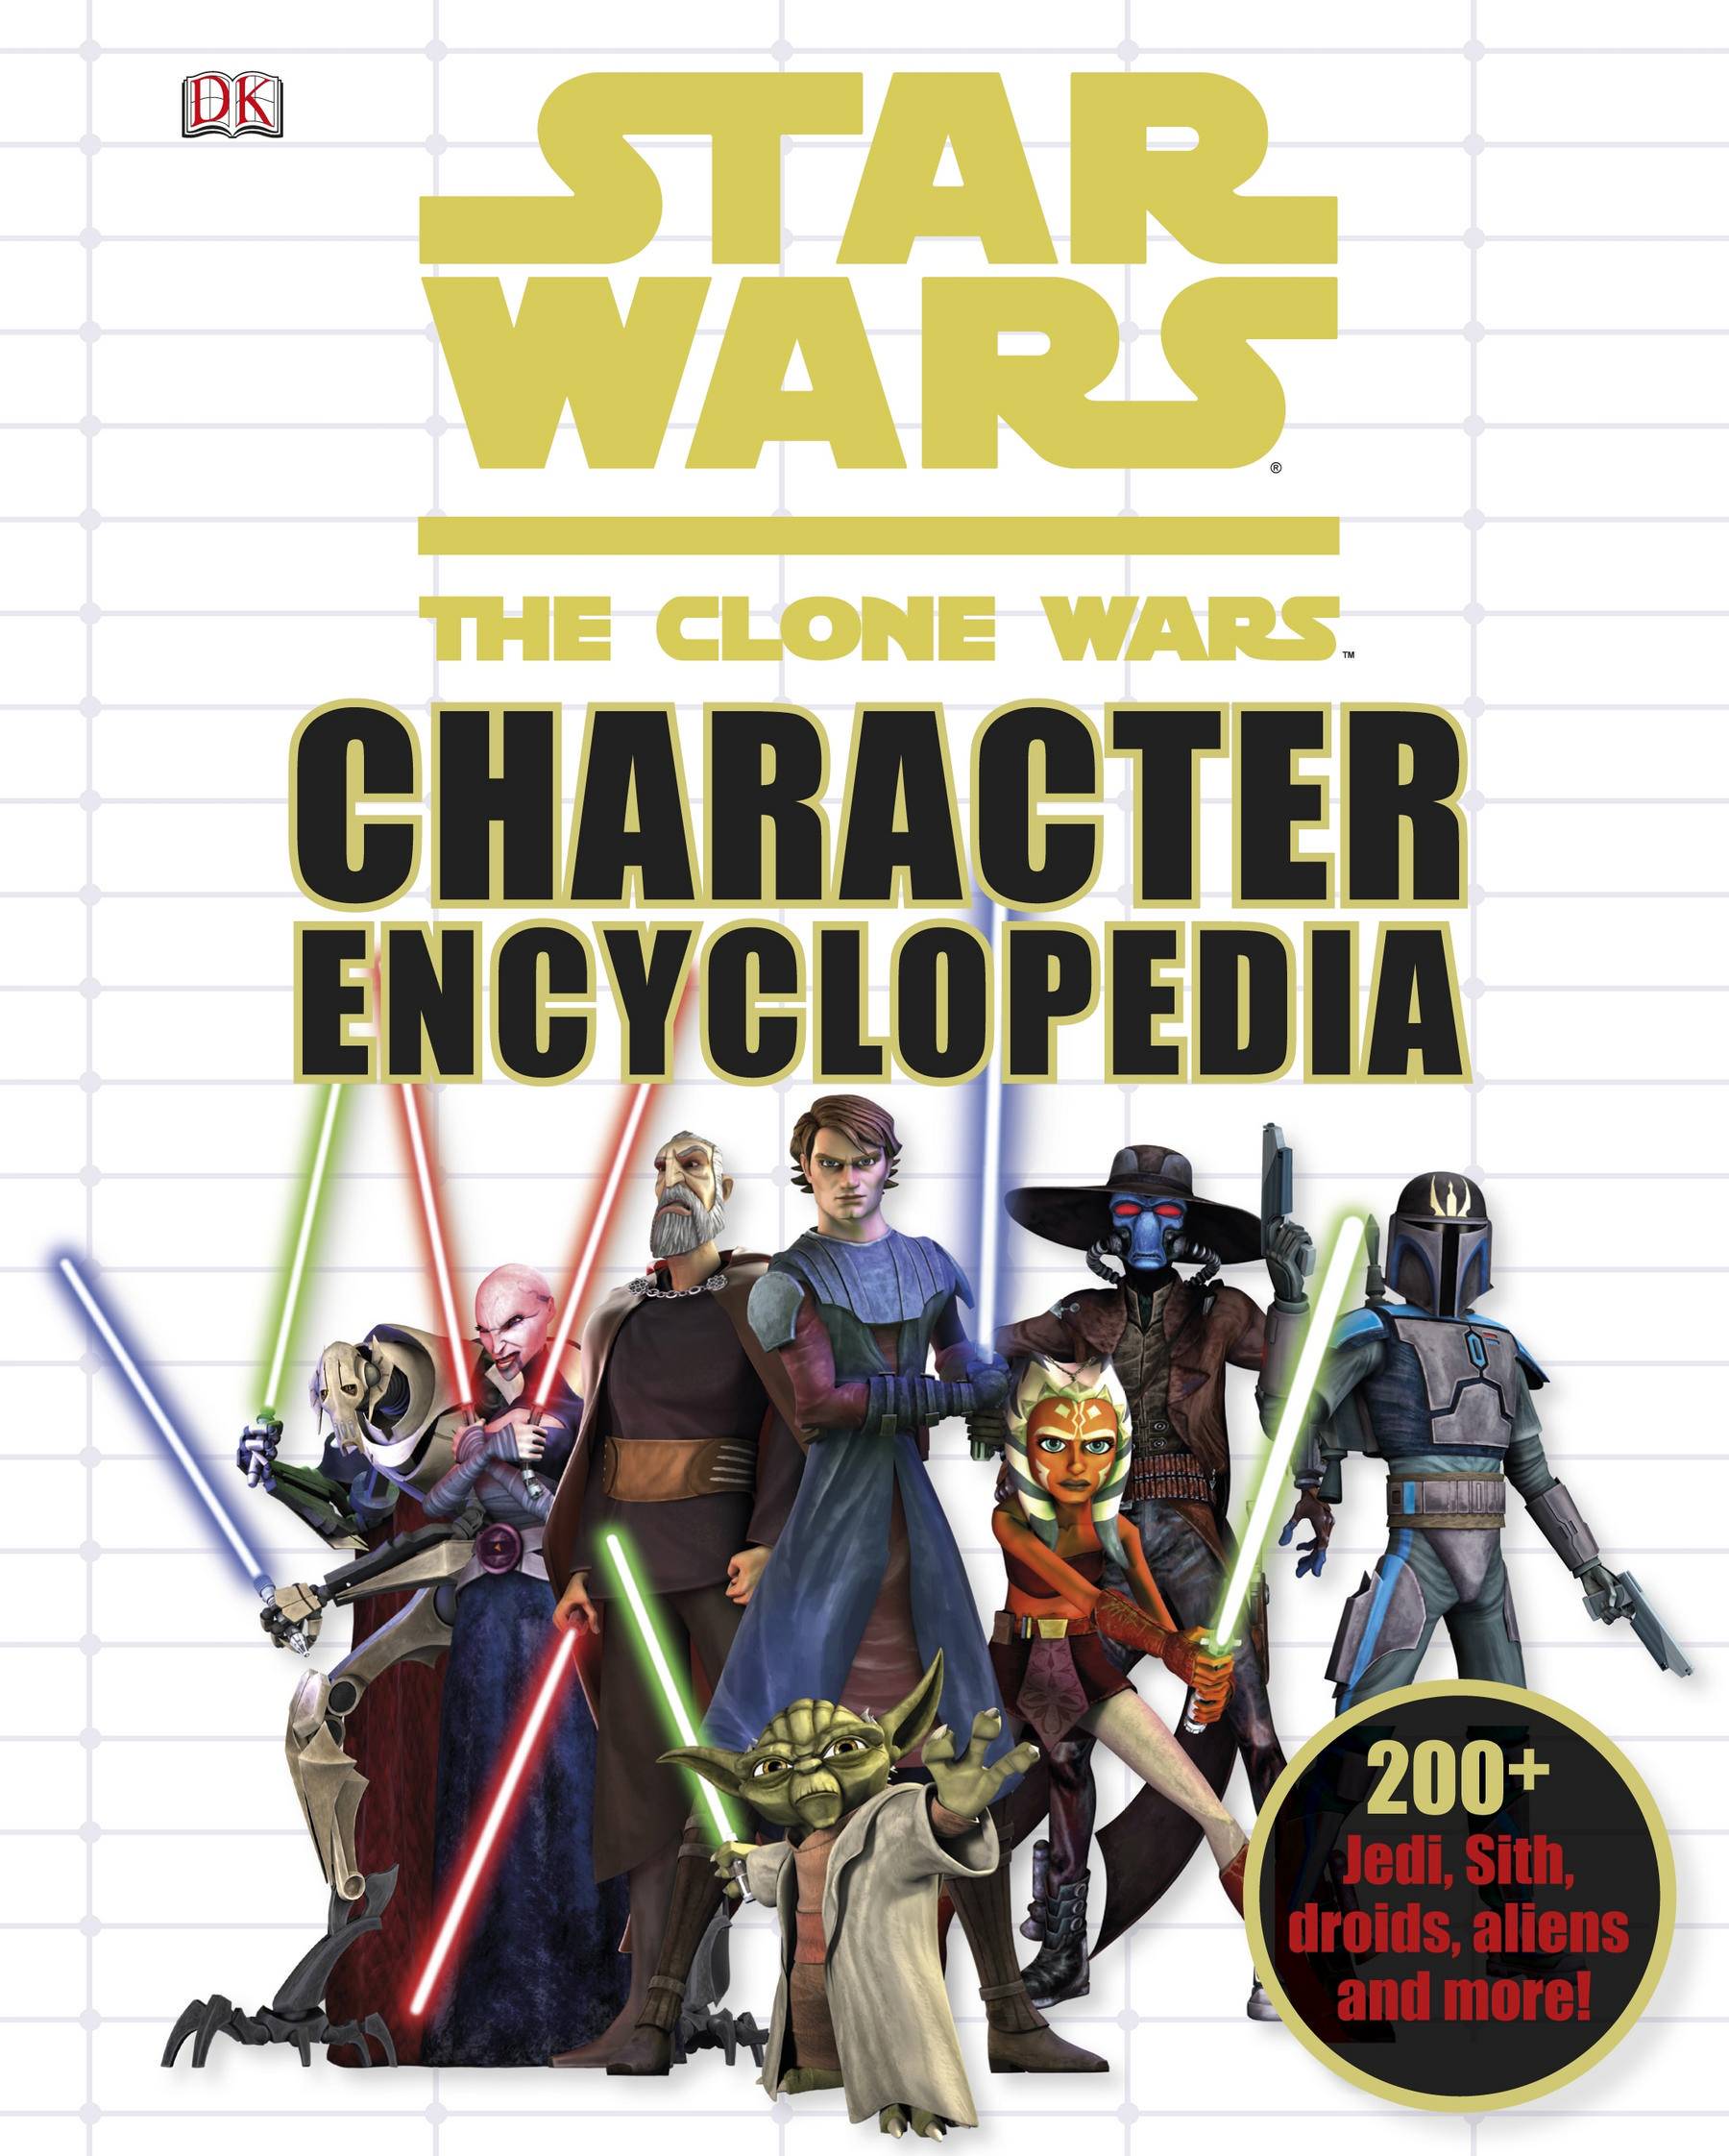 Star Wars: The Clone Wars Character Encyclopedia | Wookieepedia | FANDOM  powered by Wikia